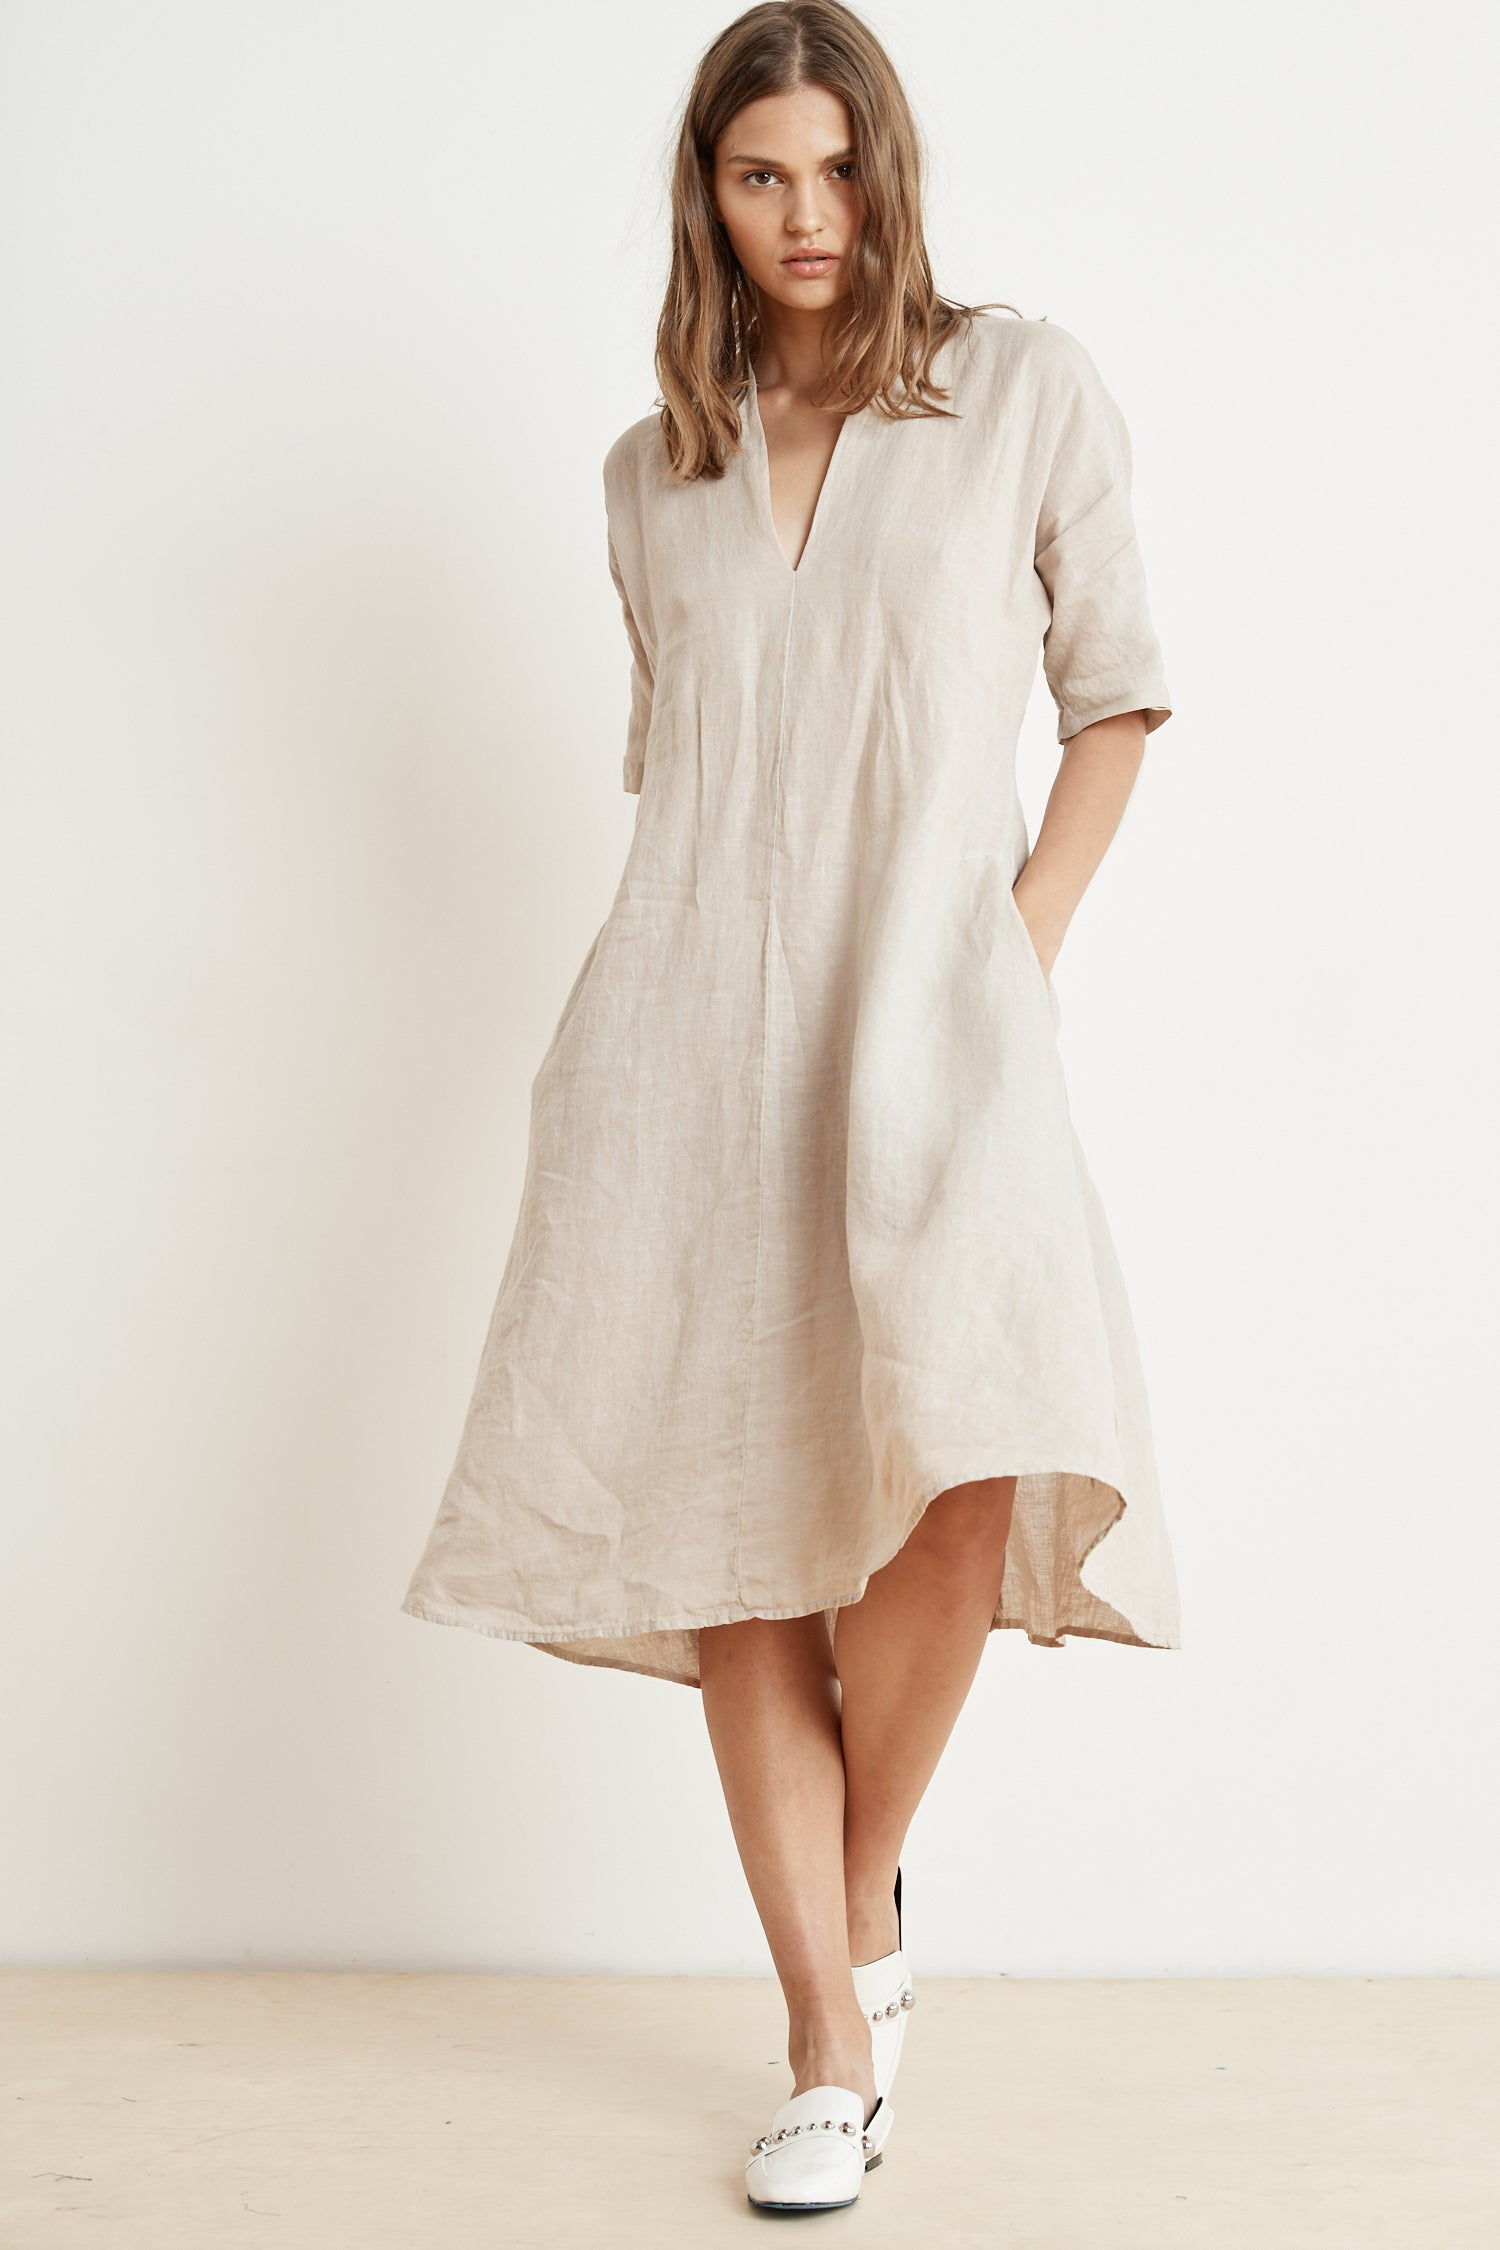 WINLEY LINEN FROCK IN CAFE